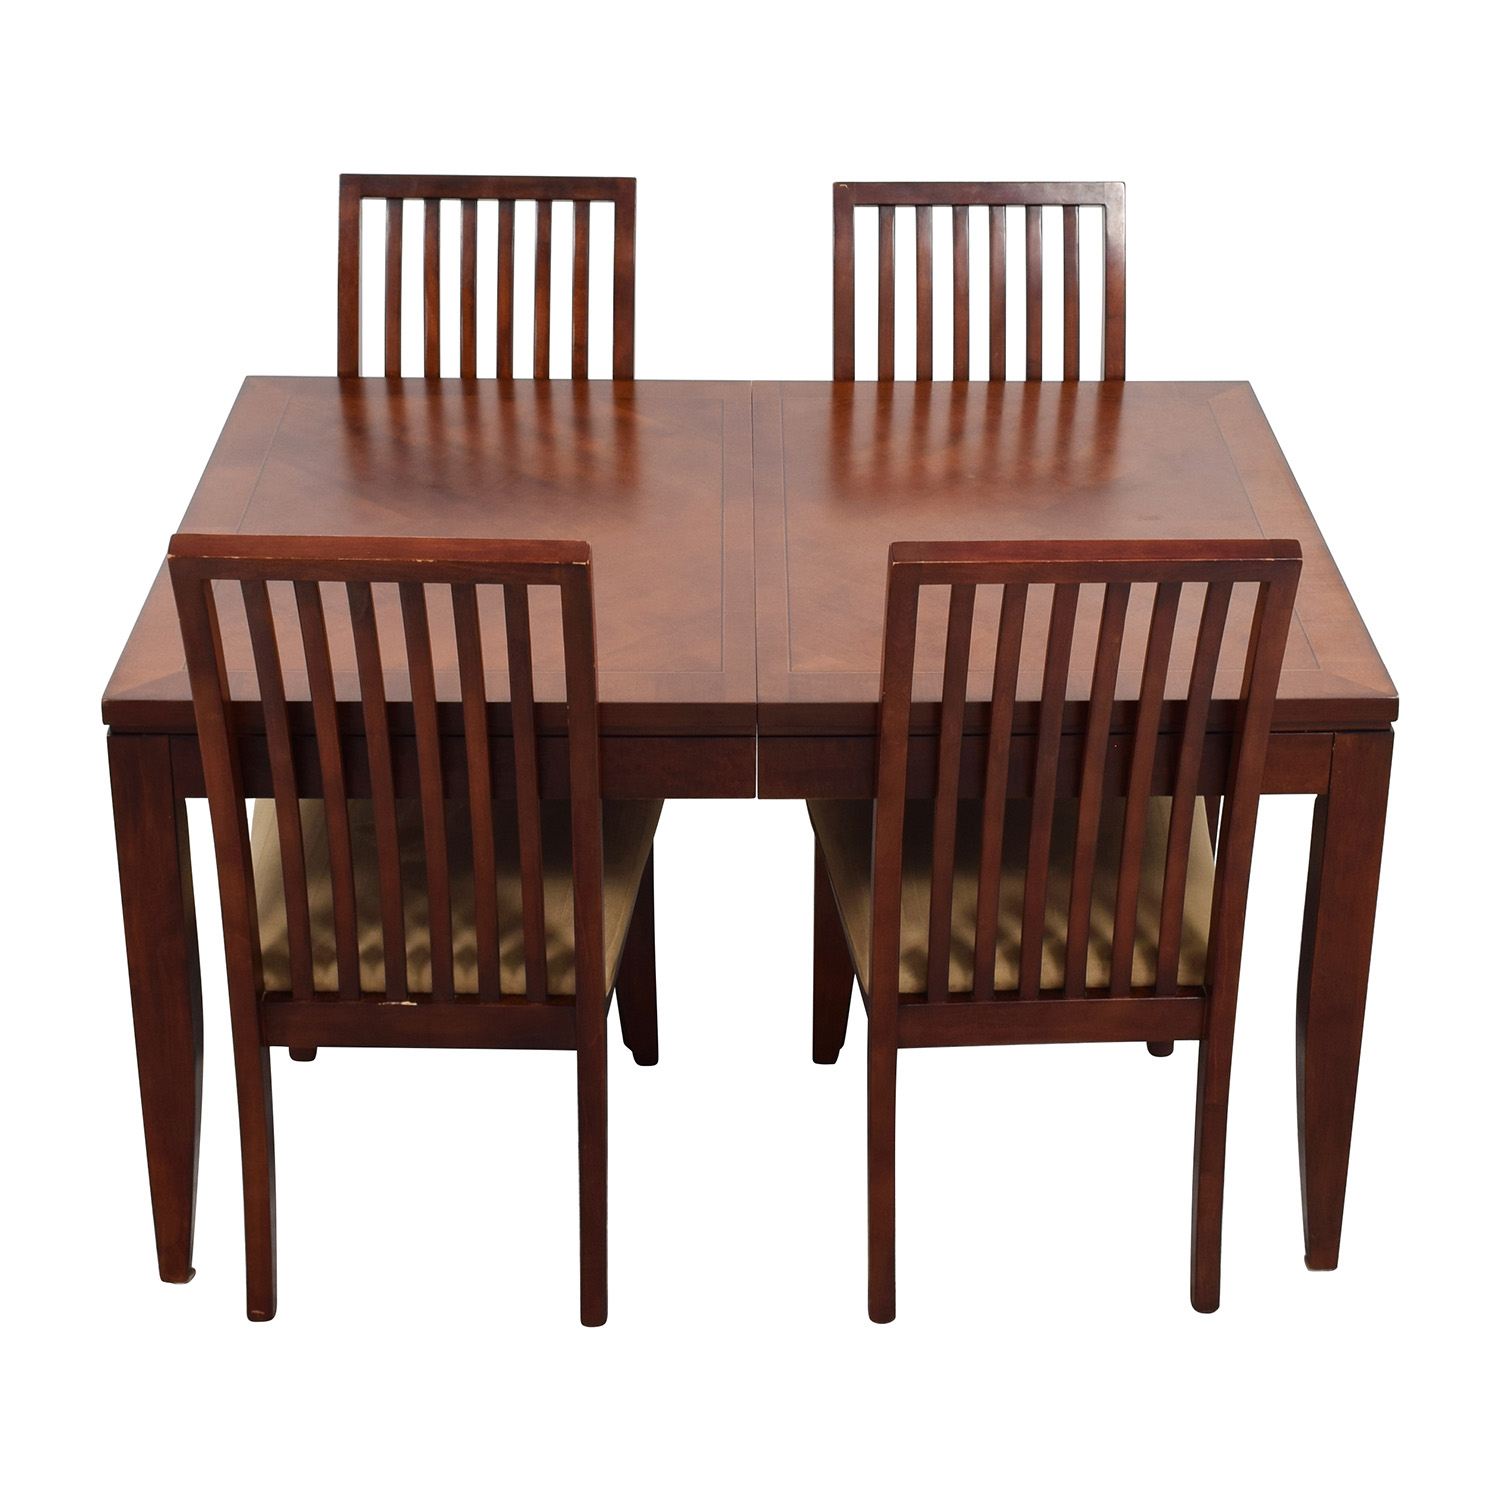 OFF Macy s Macy s Metropolitan Dining Set with Four Chairs